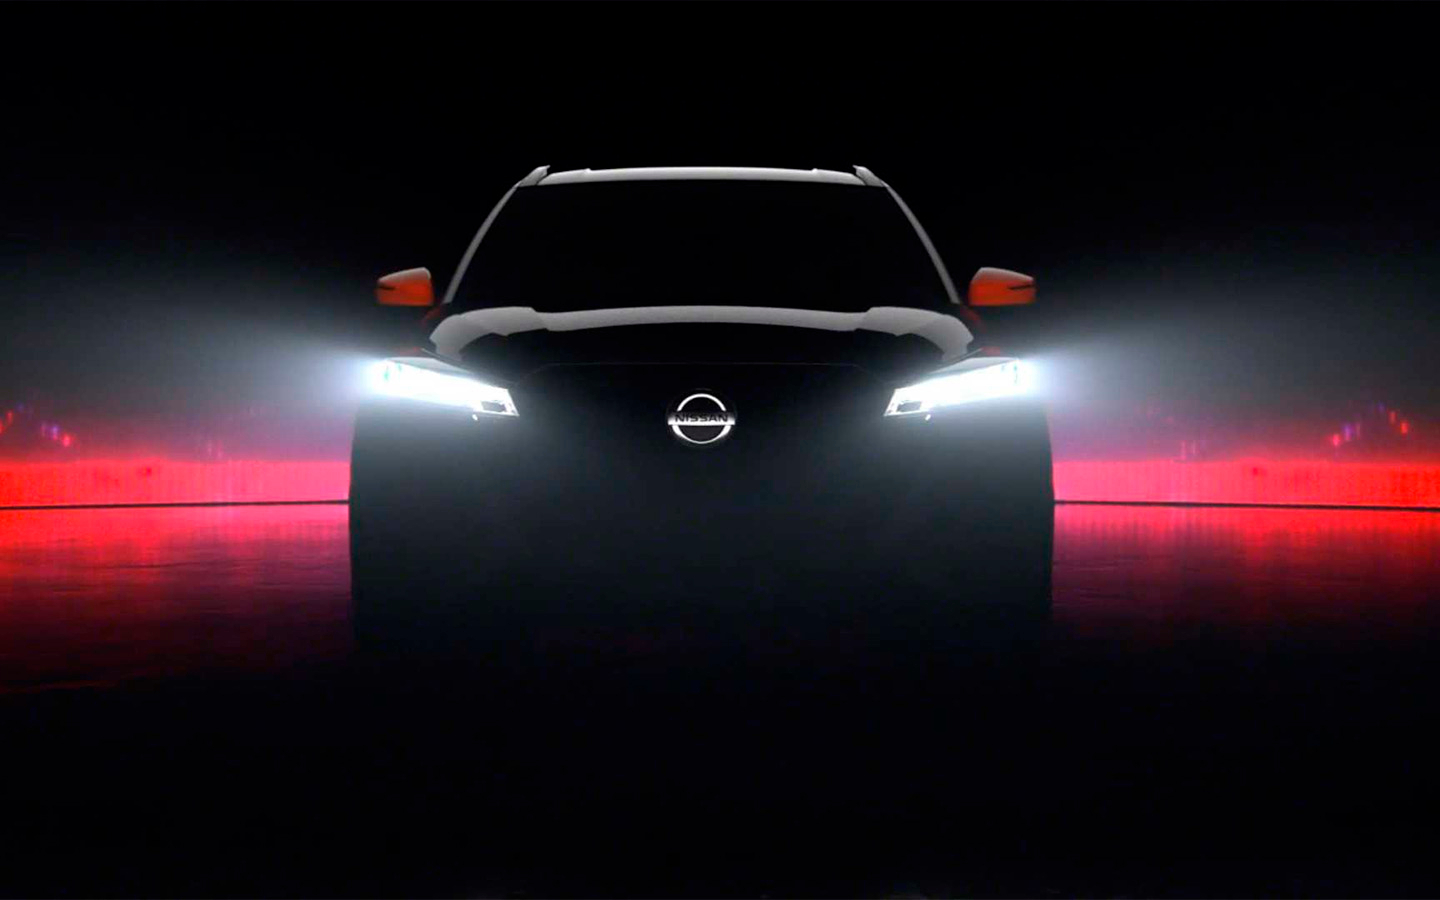 Nissan North America has shared a short teaser vid showing bits of the facelifted Kicks compact SUV set to premiere on Tuesday, December 8, 2020.